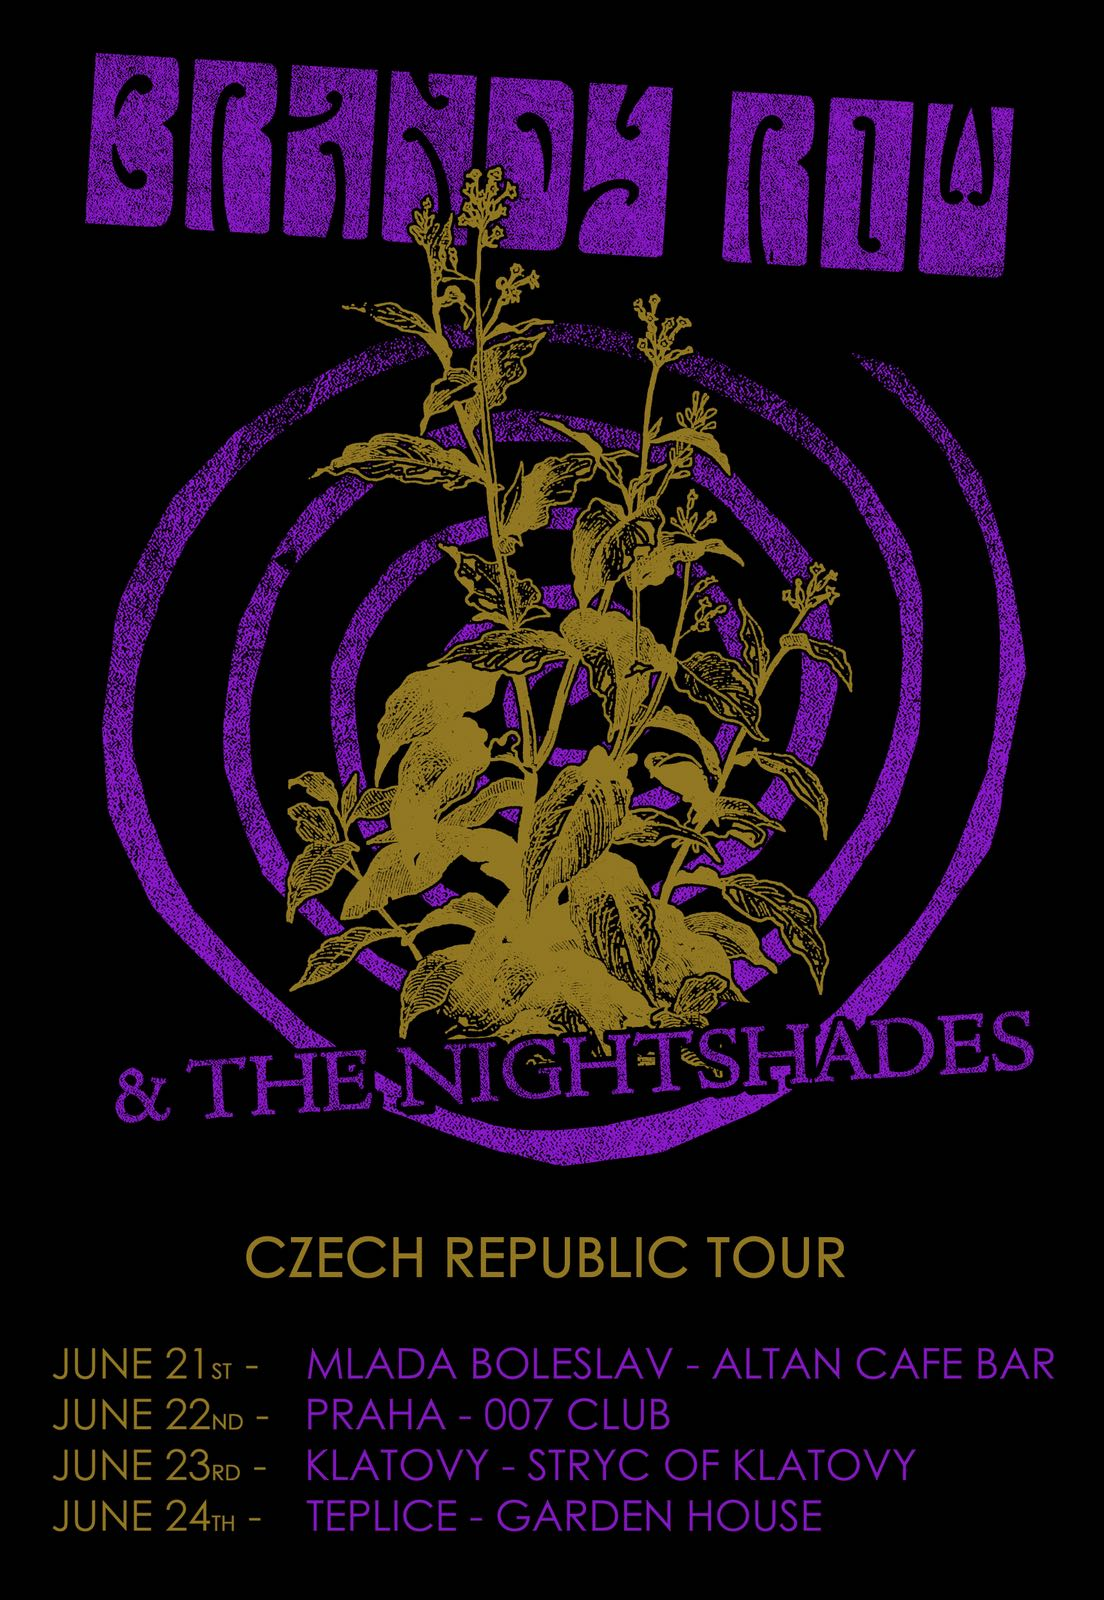 Czech Republic Tour is very soon!